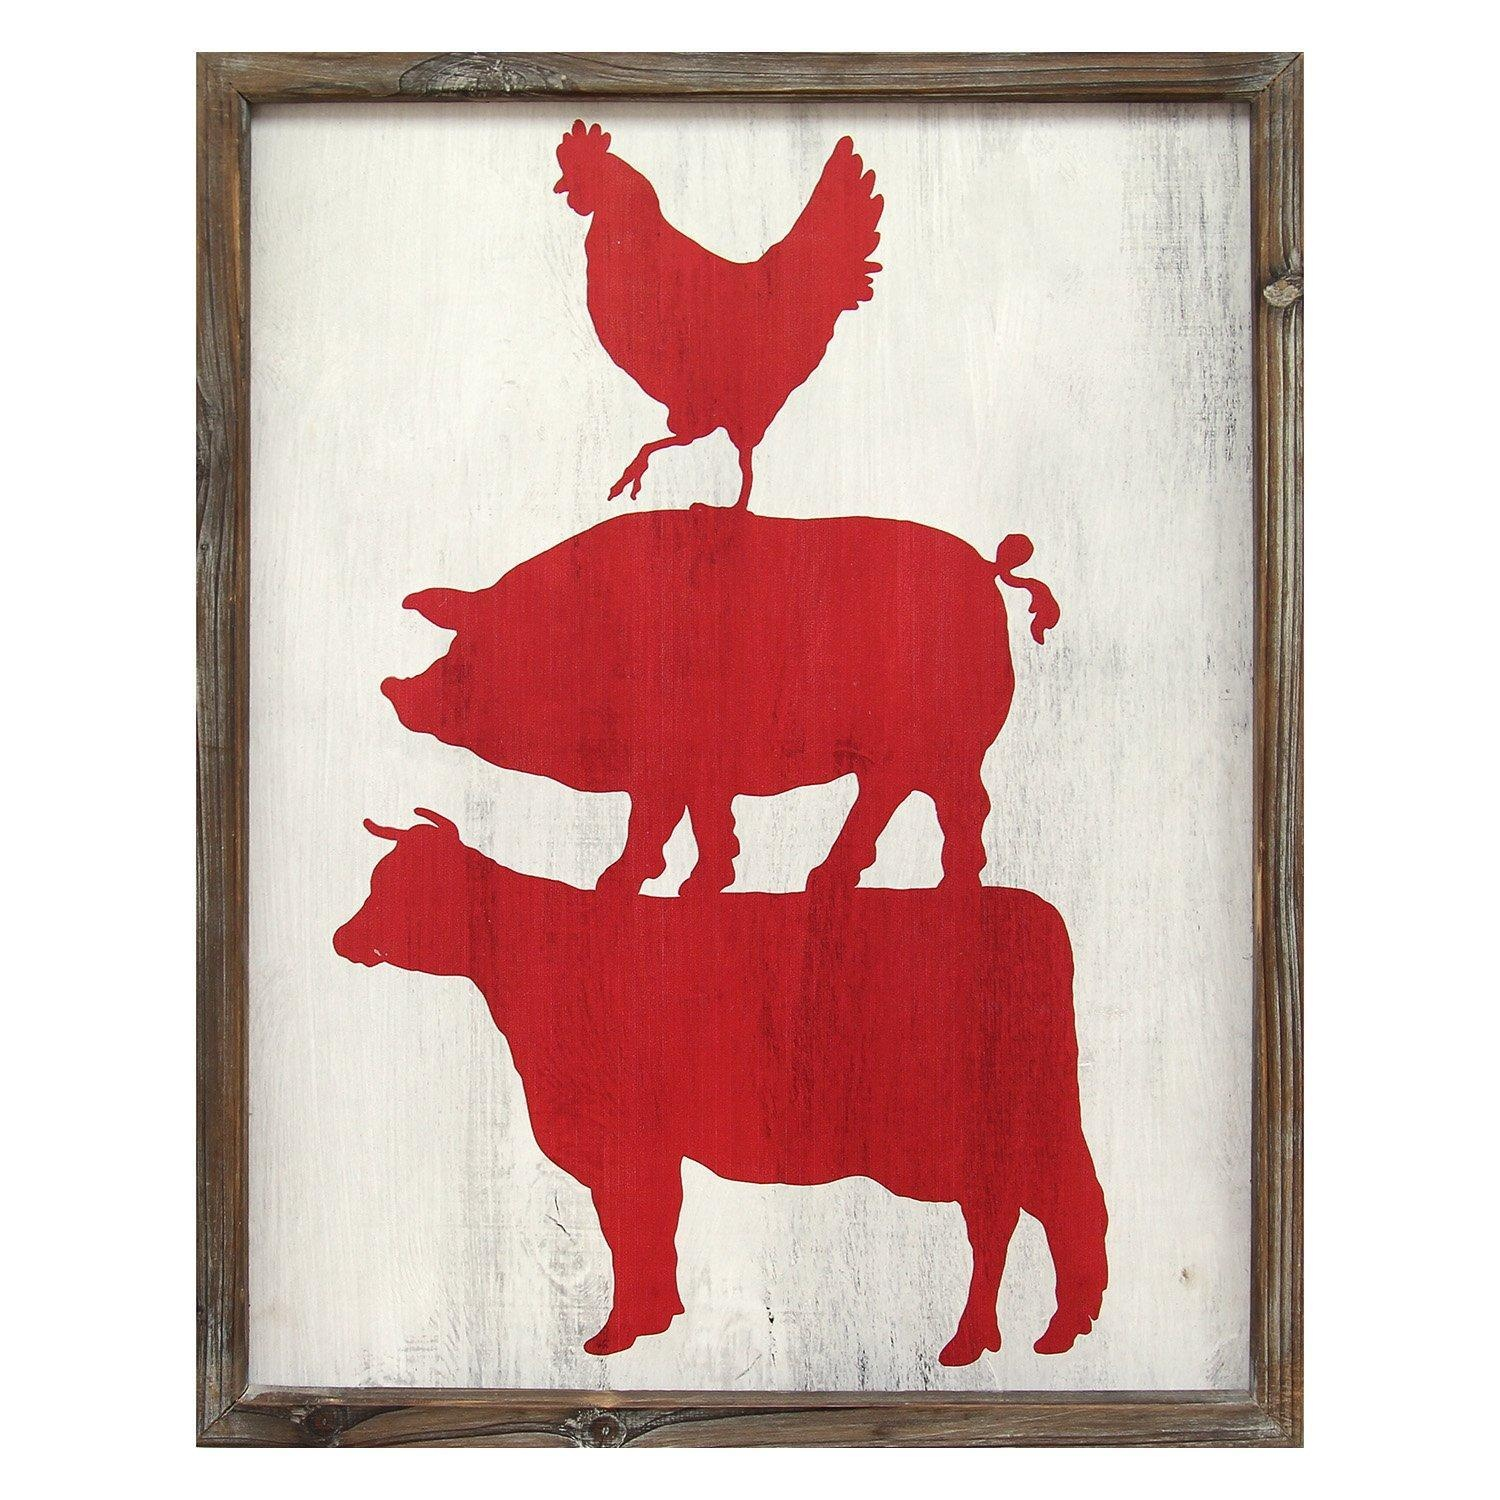 Stratton Home Decor S01990 Cow Pig & Rooster Wall Art